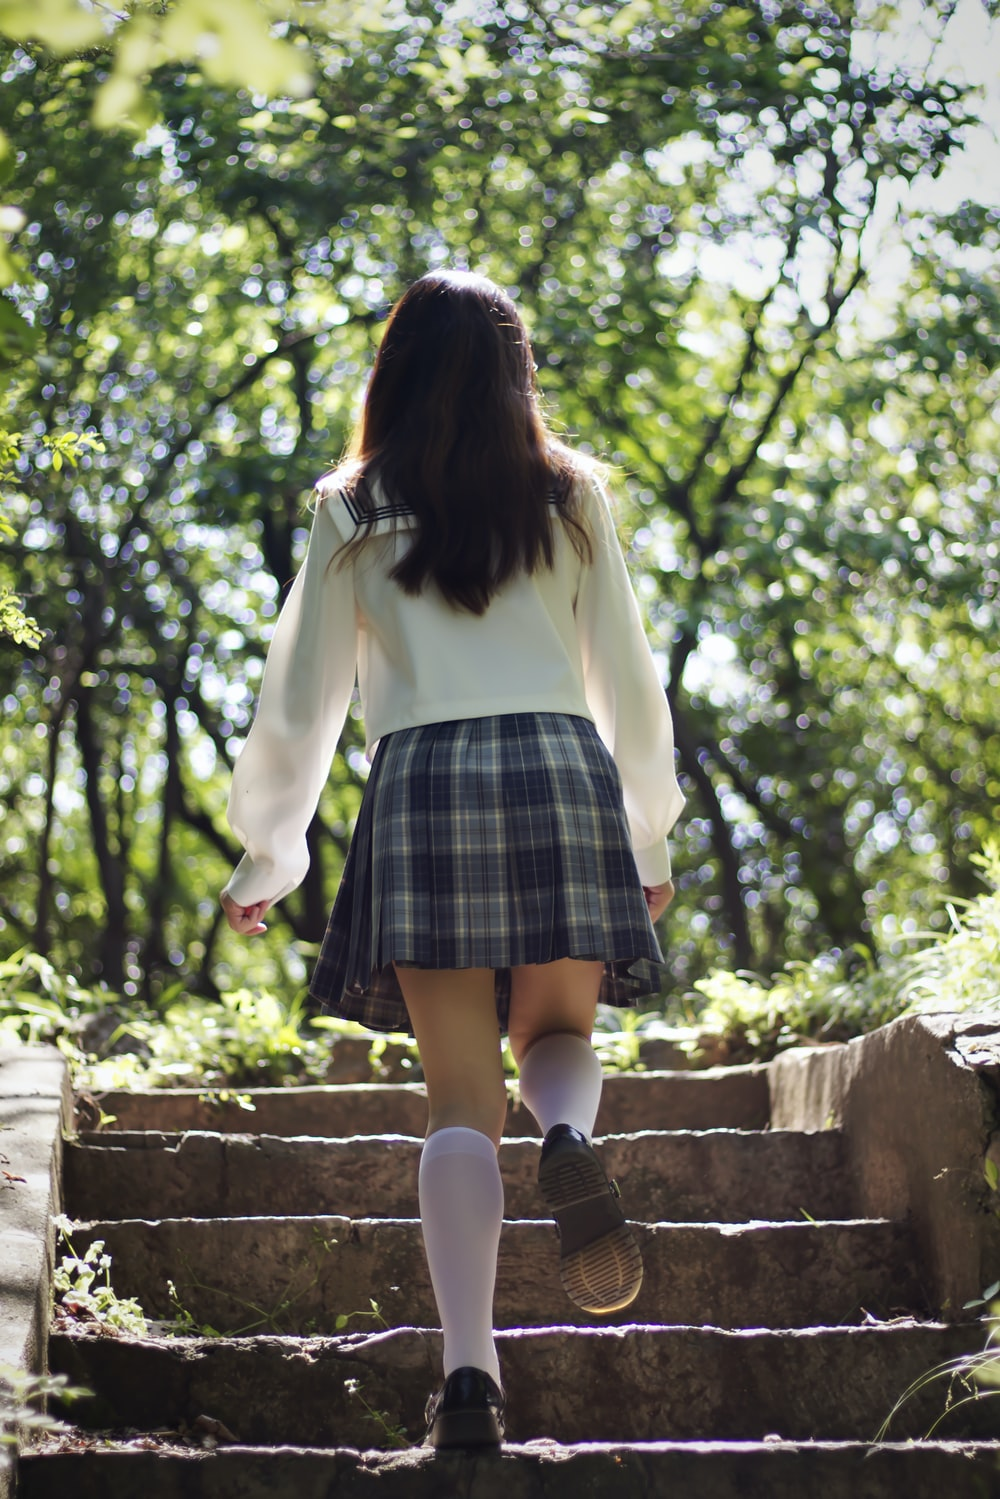 woman in white long sleeve shirt and blue and black plaid skirt standing on brown concrete